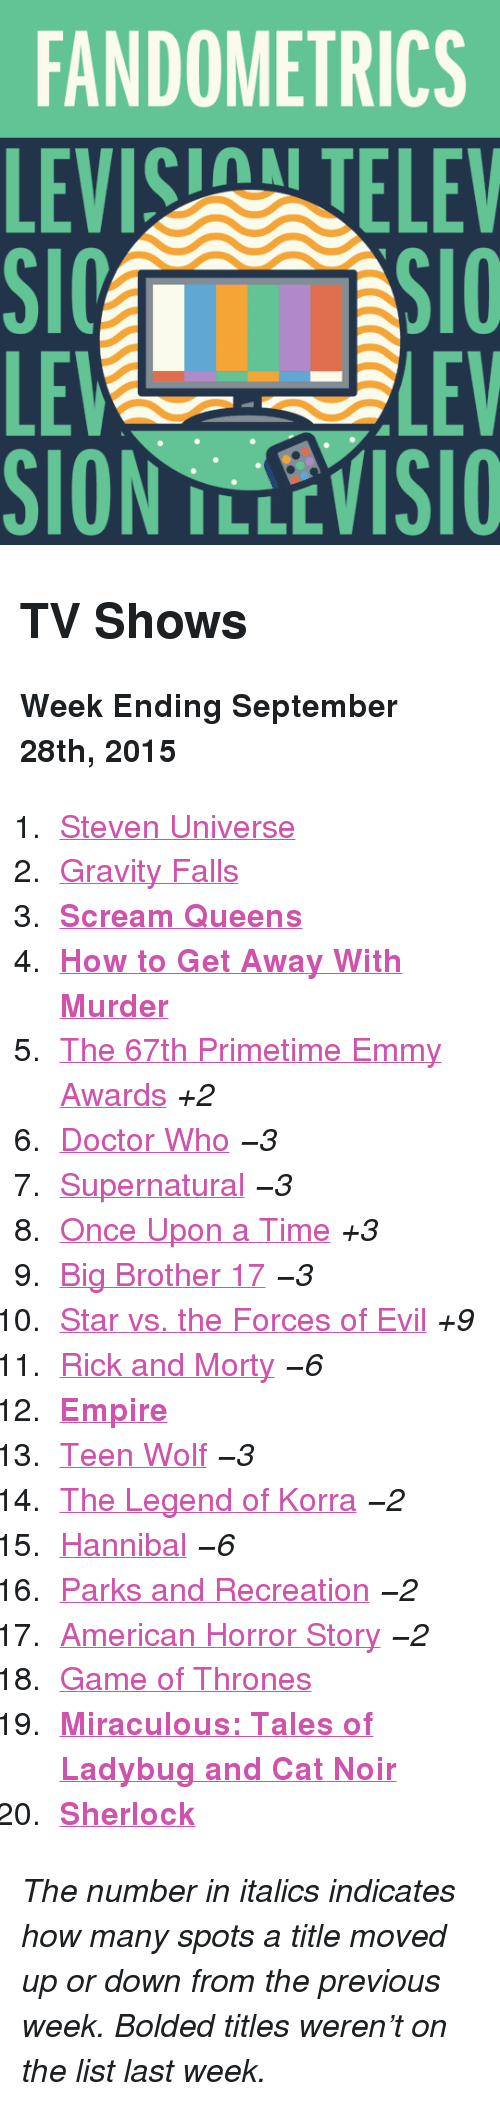 """Parks and Recreation: FANDOMETRICS  LEVIS TELEV  LE  SION TLLEVISIO  LEV <h2>TV Shows</h2><p><b>Week Ending September 28th, 2015</b></p><ol><li><a href=""""http://www.tumblr.com/search/steven%20universe"""">Steven Universe</a></li>  <li><a href=""""http://www.tumblr.com/search/gravity%20falls"""">Gravity Falls</a></li>  <li><a href=""""http://www.tumblr.com/search/scream%20queens""""><b>Scream Queens</b></a></li>  <li><a href=""""http://www.tumblr.com/search/how%20to%20get%20away%20with%20murder""""><b>How to Get Away With Murder</b></a></li>  <li><a href=""""http://www.tumblr.com/search/emmys"""">The 67th Primetime Emmy Awards</a><i>+2</i></li>  <li><a href=""""http://www.tumblr.com/search/doctor%20who"""">Doctor Who</a><i>−3</i></li>  <li><a href=""""http://www.tumblr.com/search/supernatural"""">Supernatural</a><i>−3</i></li>  <li><a href=""""http://www.tumblr.com/search/ouat"""">Once Upon a Time</a><i>+3</i></li>  <li><a href=""""http://www.tumblr.com/search/bb17"""">Big Brother 17</a><i>−3</i></li>  <li><a href=""""http://www.tumblr.com/search/star%20vs%20the%20forces%20of%20evil"""">Star vs. the Forces of Evil</a><i>+9</i></li>  <li><a href=""""http://www.tumblr.com/search/rick%20and%20morty"""">Rick and Morty</a><i>−6</i></li>  <li><a href=""""http://www.tumblr.com/search/empire""""><b>Empire</b></a></li>  <li><a href=""""http://www.tumblr.com/search/teen%20wolf"""">Teen Wolf</a><i>−3</i></li>  <li><a href=""""http://www.tumblr.com/search/legend%20of%20korra"""">The Legend of Korra</a><i>−2</i></li>  <li><a href=""""http://www.tumblr.com/search/hannibal"""">Hannibal</a><i>−6</i></li>  <li><a href=""""http://www.tumblr.com/search/parks%20and%20recreation"""">Parks and Recreation</a><i>−2</i></li>  <li><a href=""""http://www.tumblr.com/search/american%20horror%20story"""">American Horror Story</a><i>−2</i></li>  <li><a href=""""http://www.tumblr.com/search/game%20of%20thrones"""">Game of Thrones</a></li>  <li><a href=""""http://www.tumblr.com/search/miraculous%20ladybug""""><b>Miraculous: Tales of Ladybug and Cat Noir</b></a></li>  <li><a href=""""http://www.tumblr.com/search/"""